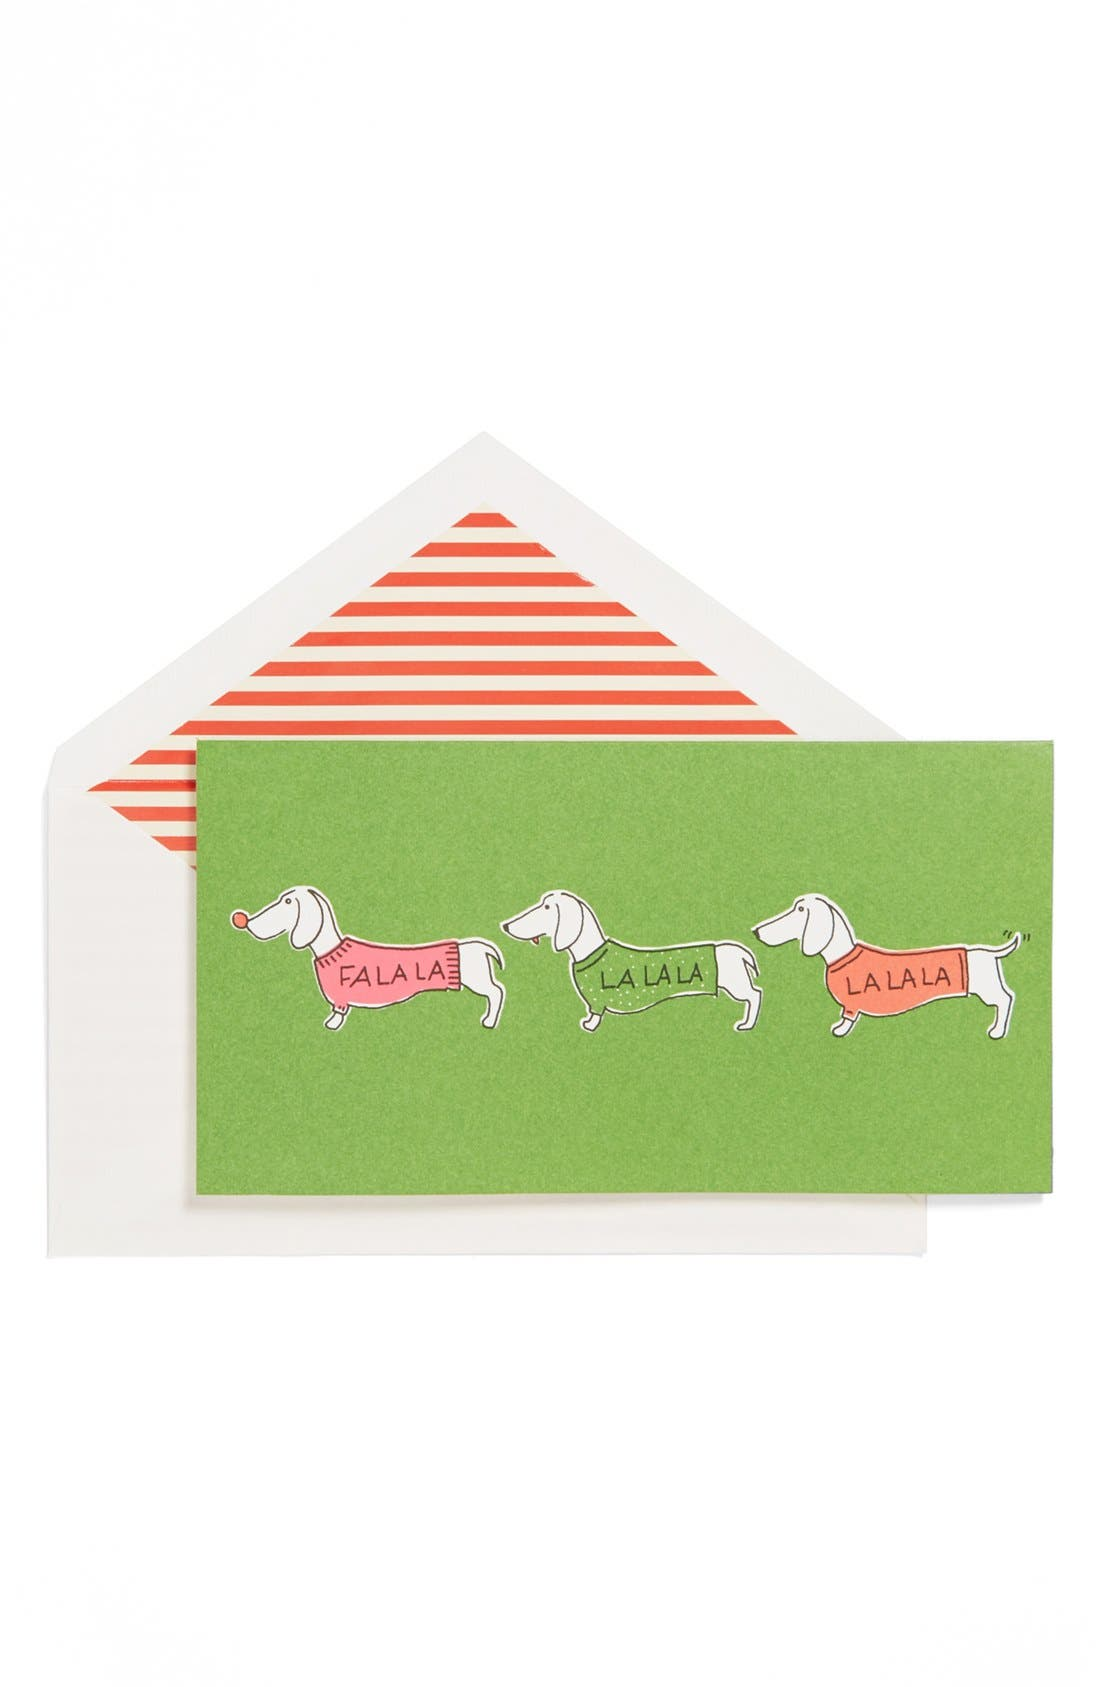 Main Image - kate spade new york 'fa la la' holiday cards (set of 10)